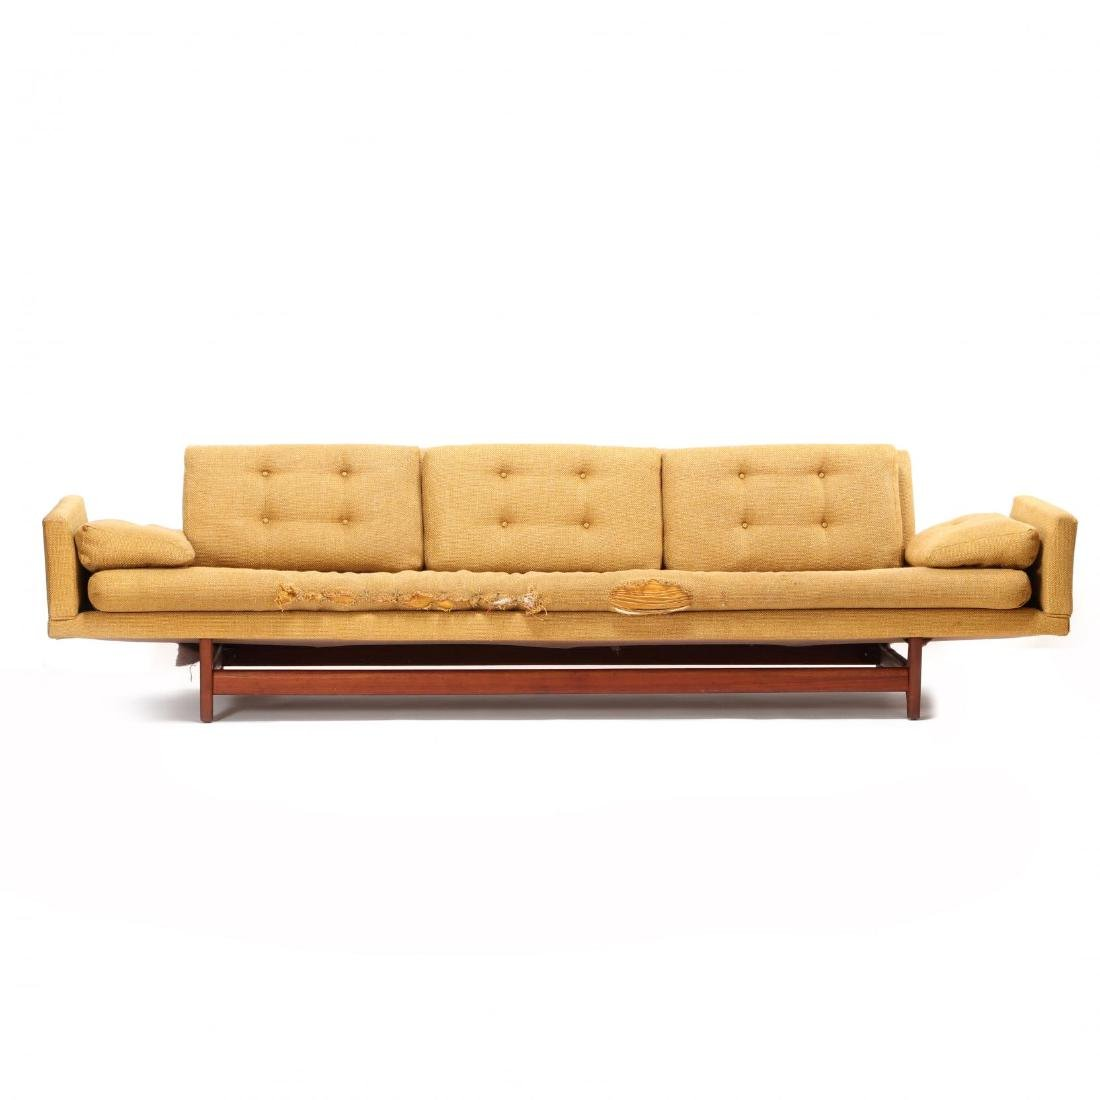 Adrian Persall, Streamlined Modernist Sofa - 6